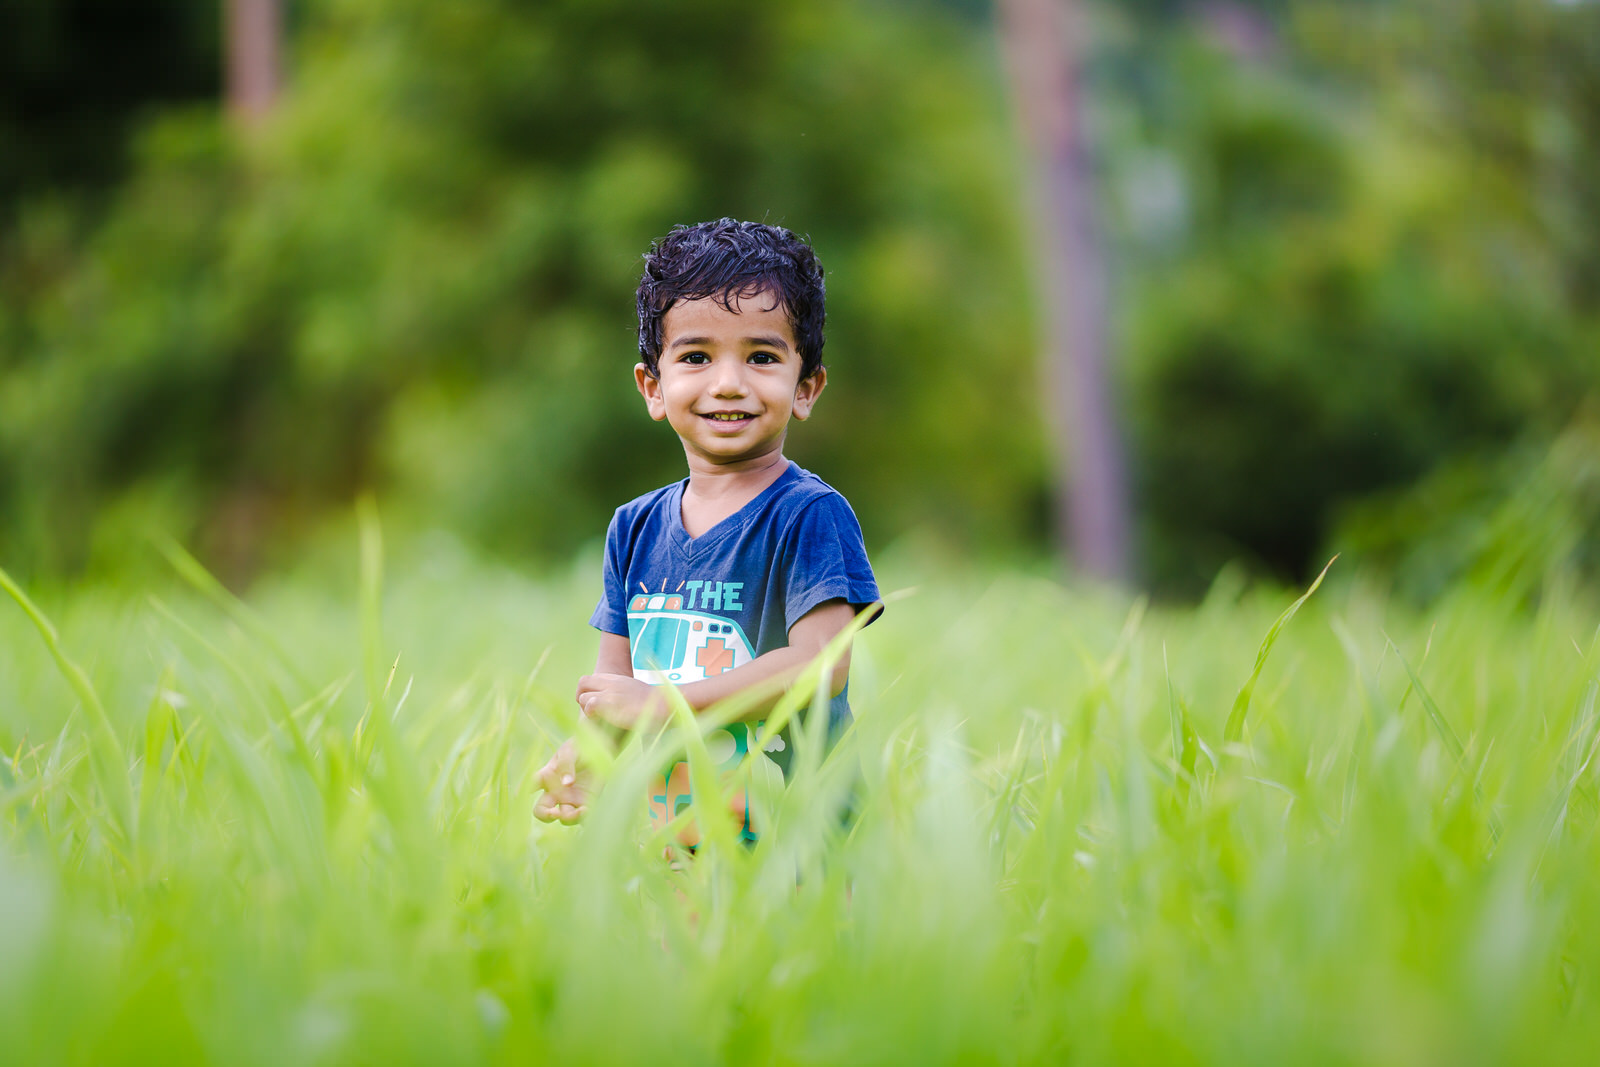 10072015-Sahas-Playing-Middle-Fields-023.jpg